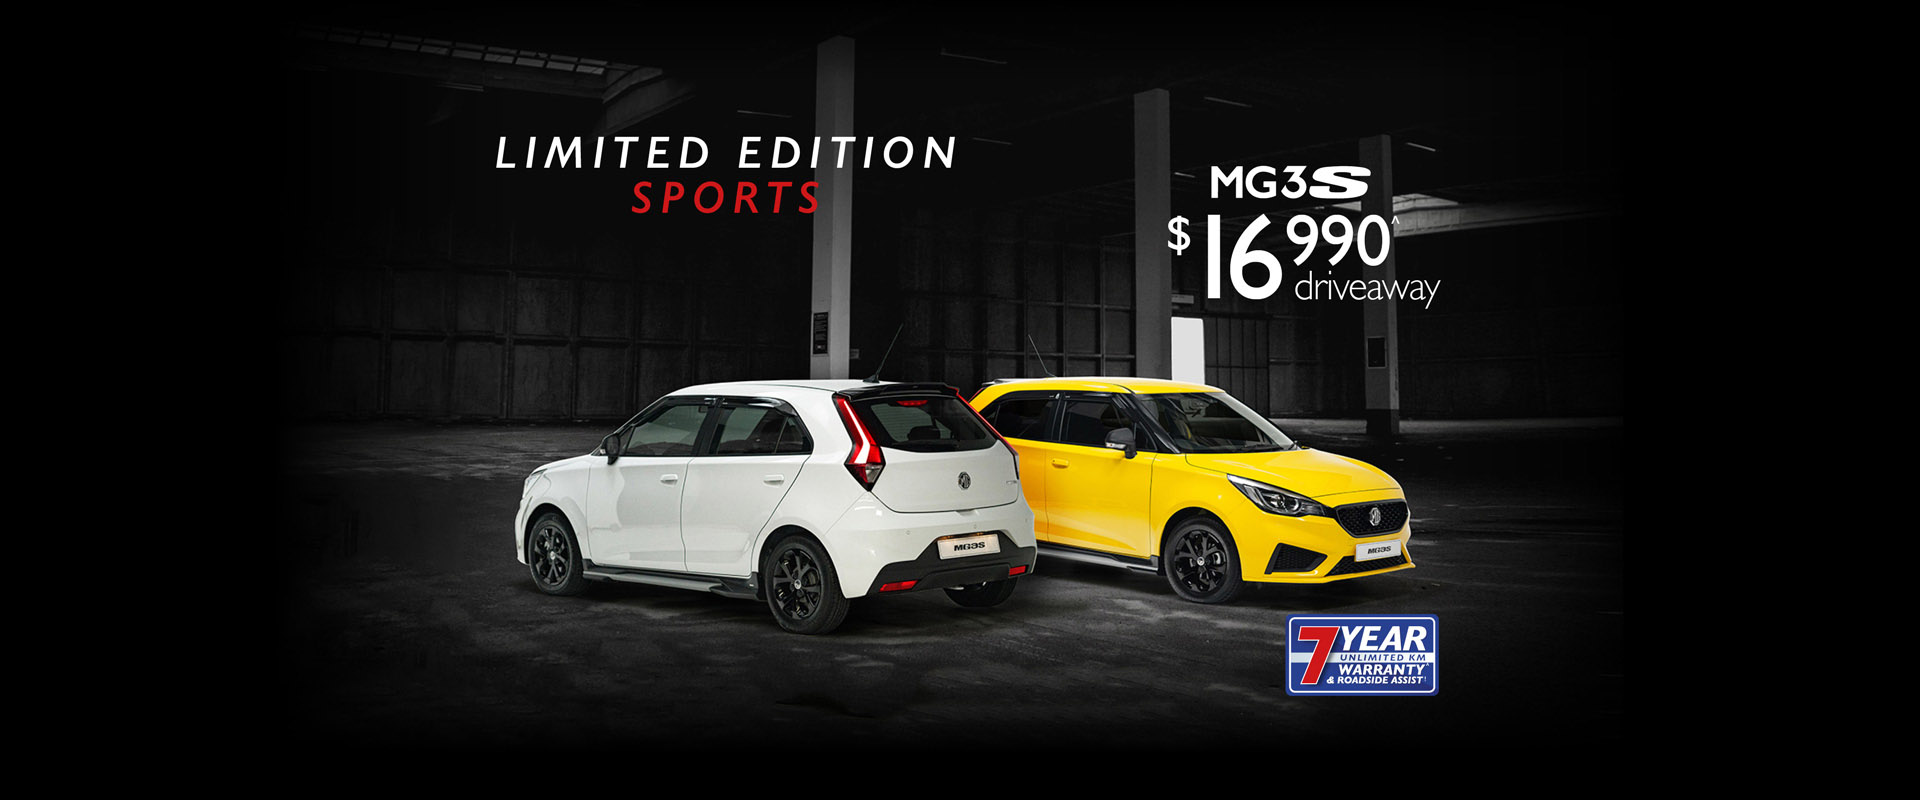 All new Limited Edition MG3S now available! Get yours now!